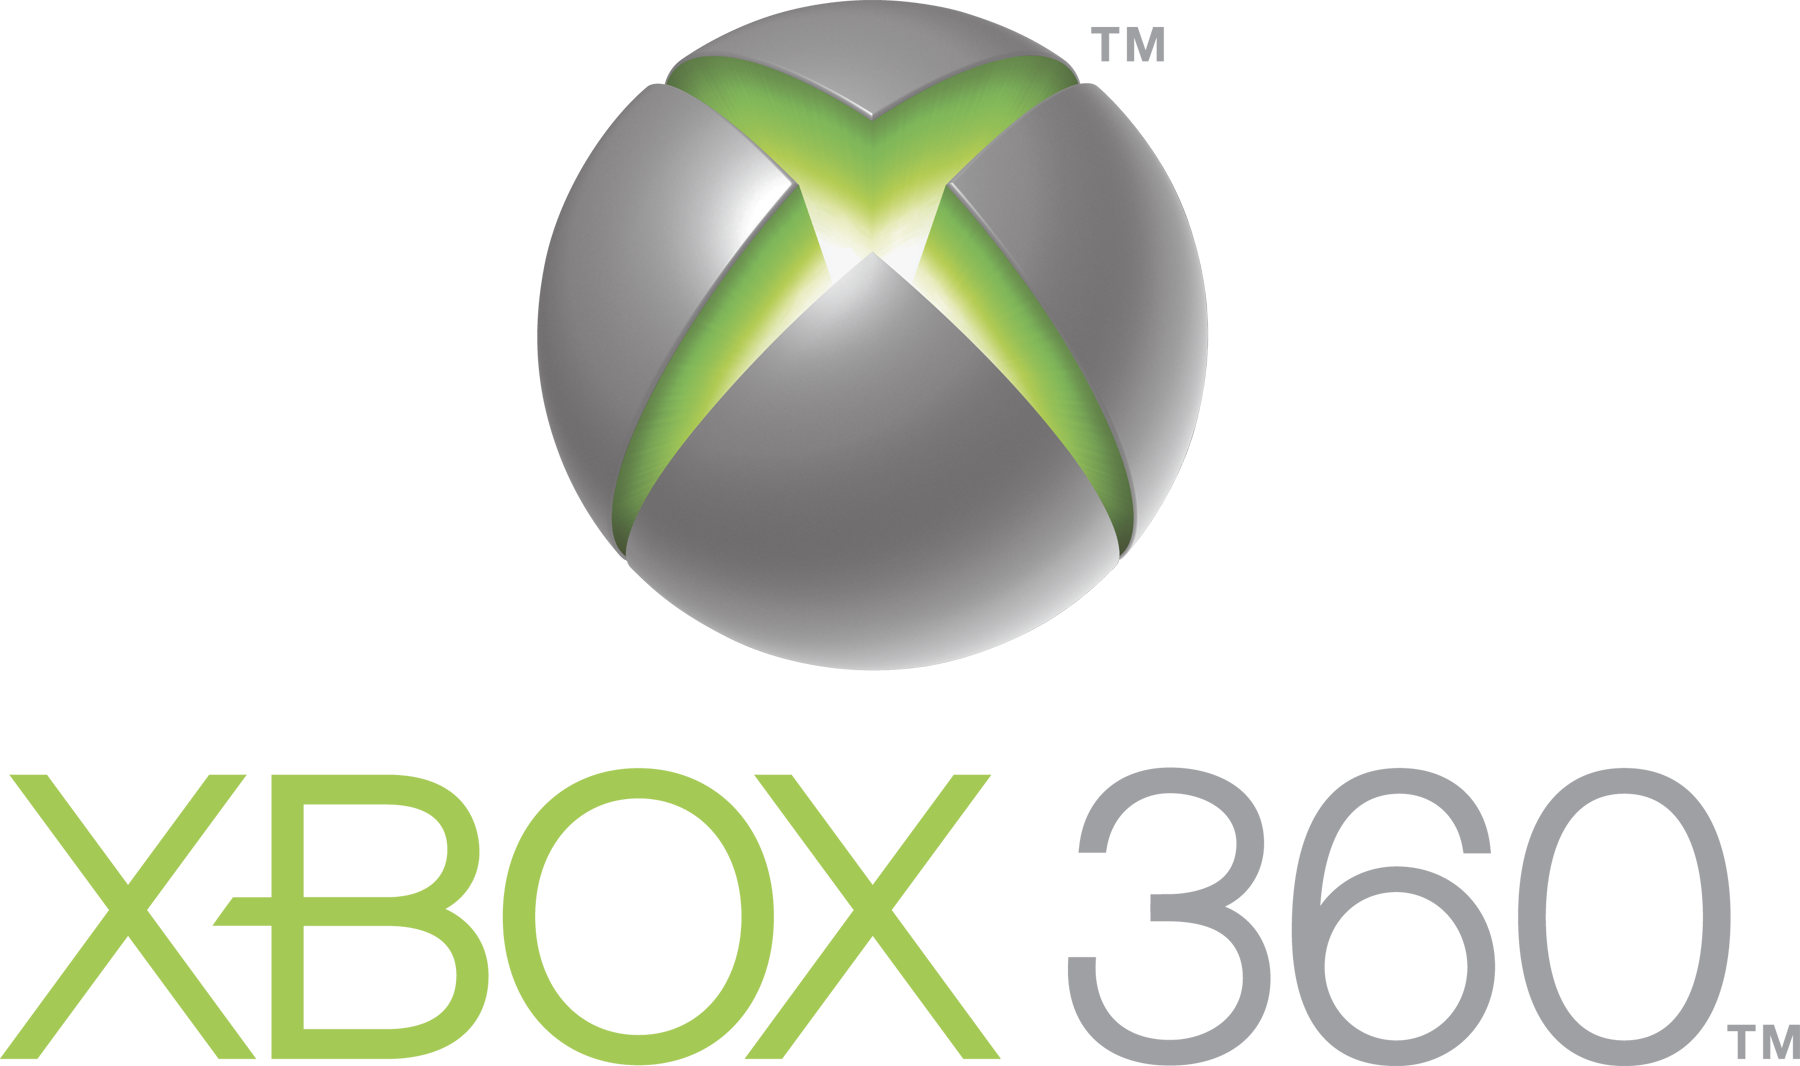 """Six Simple Ways to Fix the """"Open Tray Error"""" for XBOX 360's"""